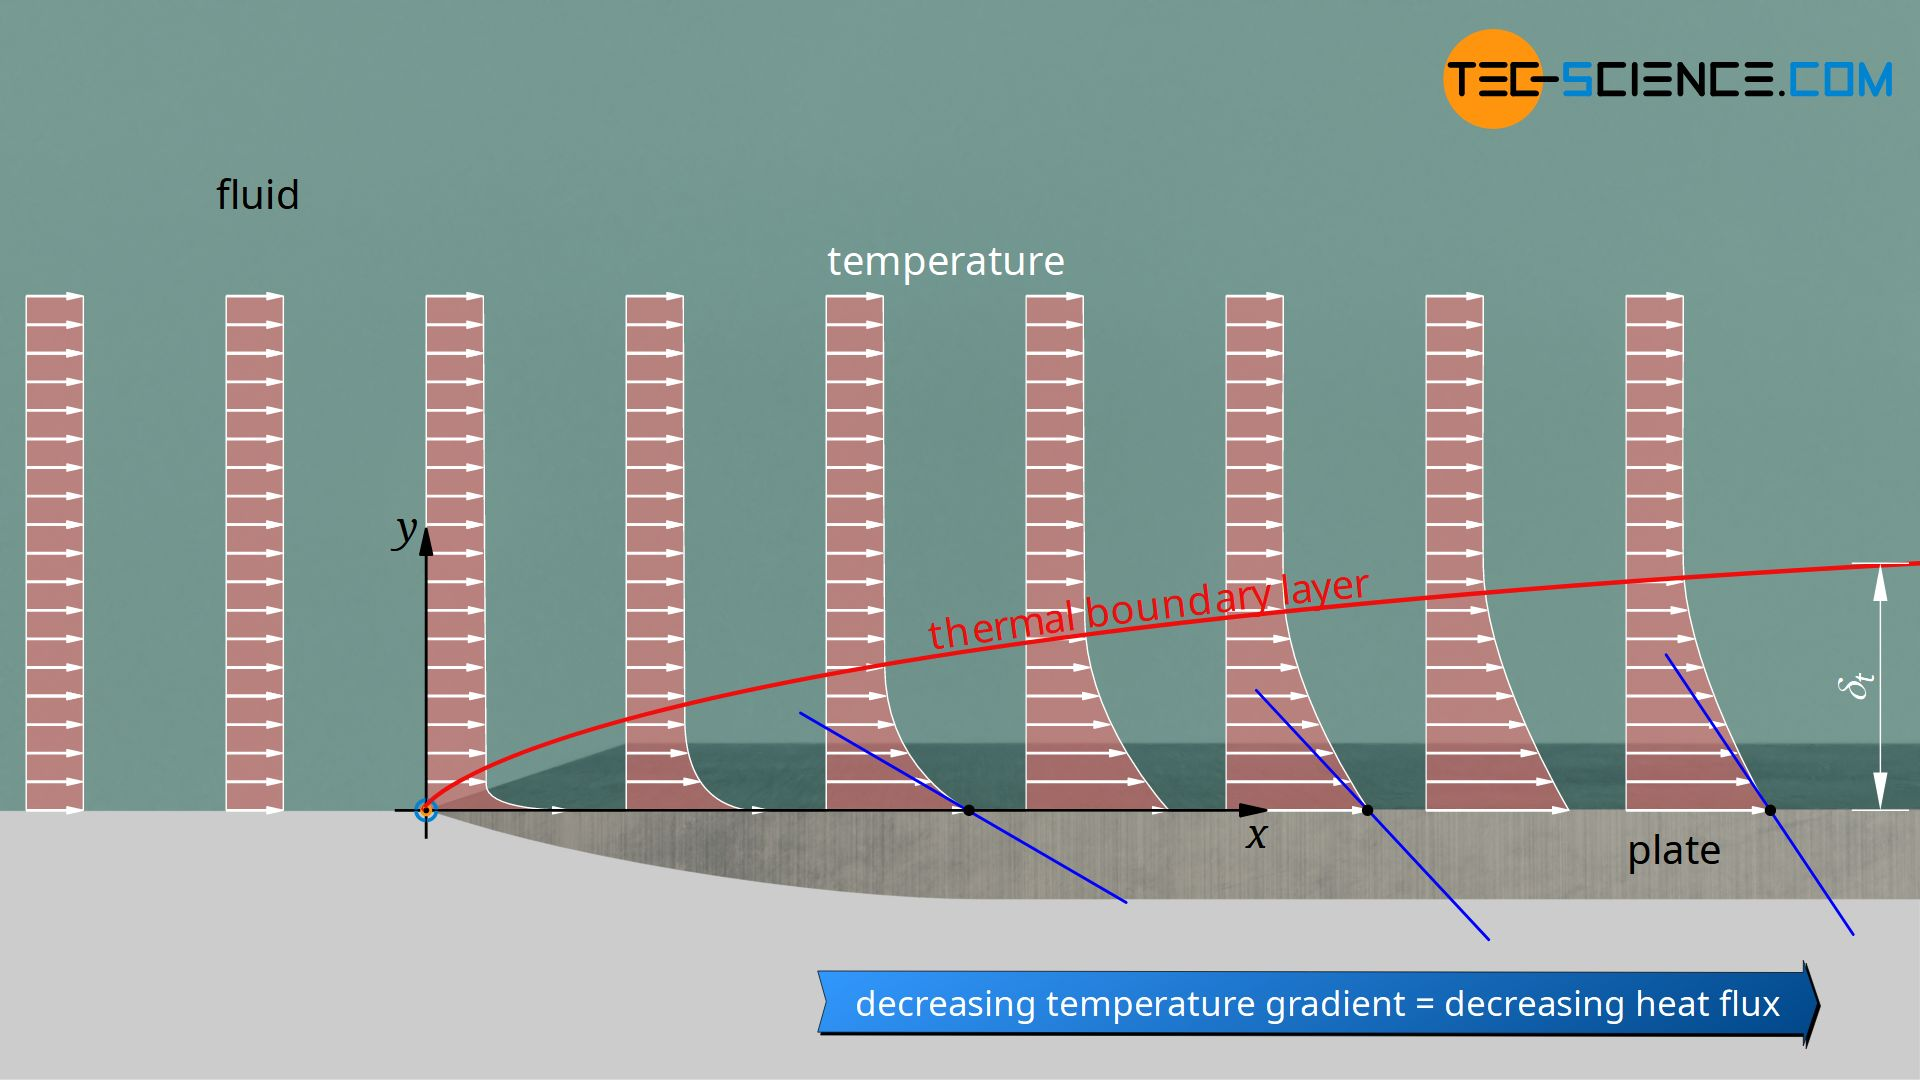 Thermal boundary layer of an isothermally heated plate